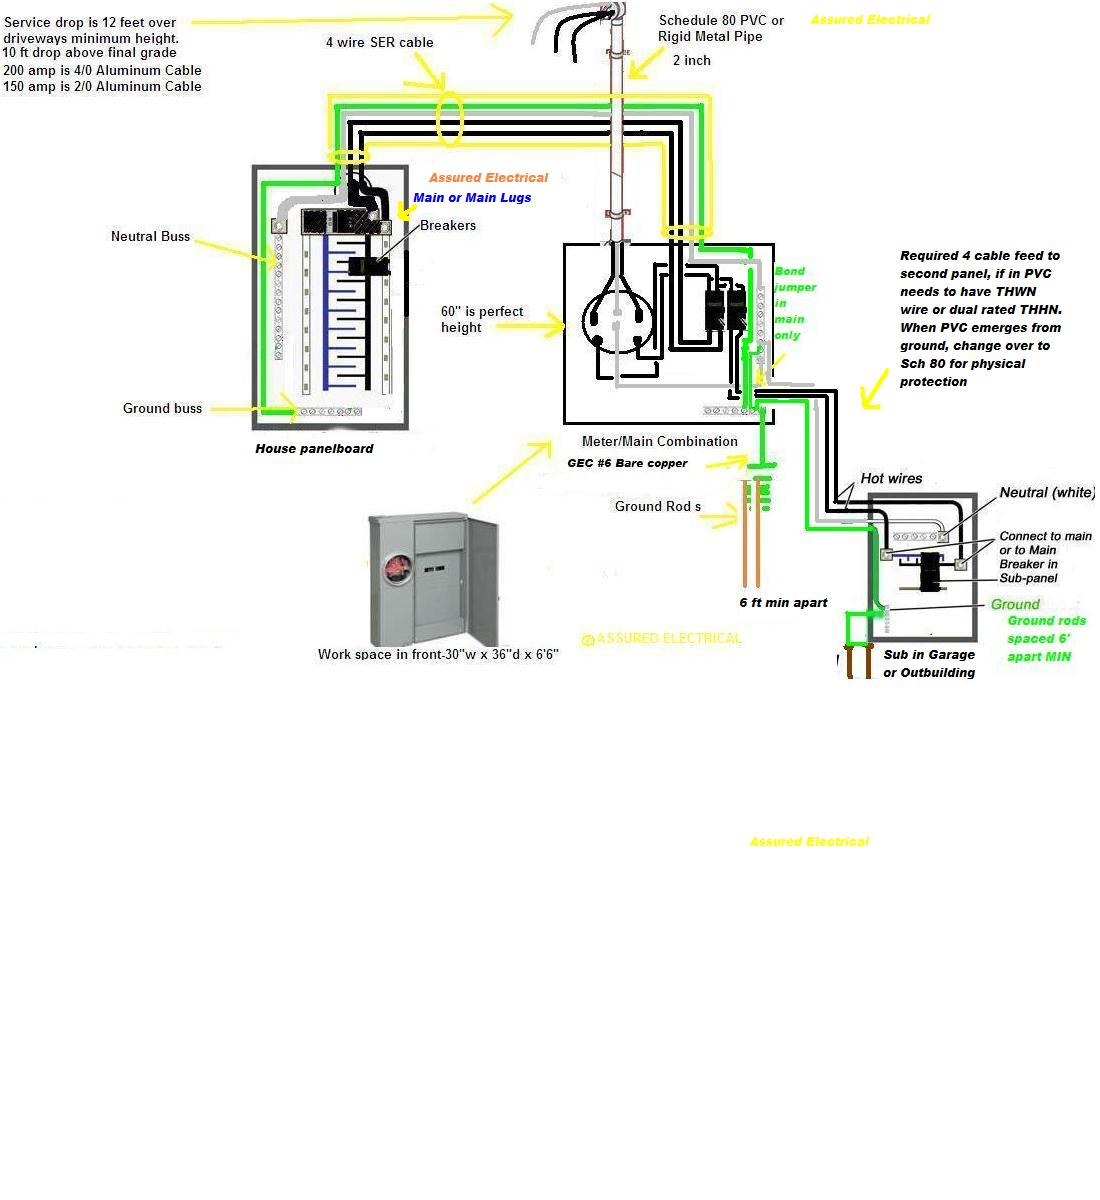 wiring diagram for 200 amp service  u2013 wiring diagram for